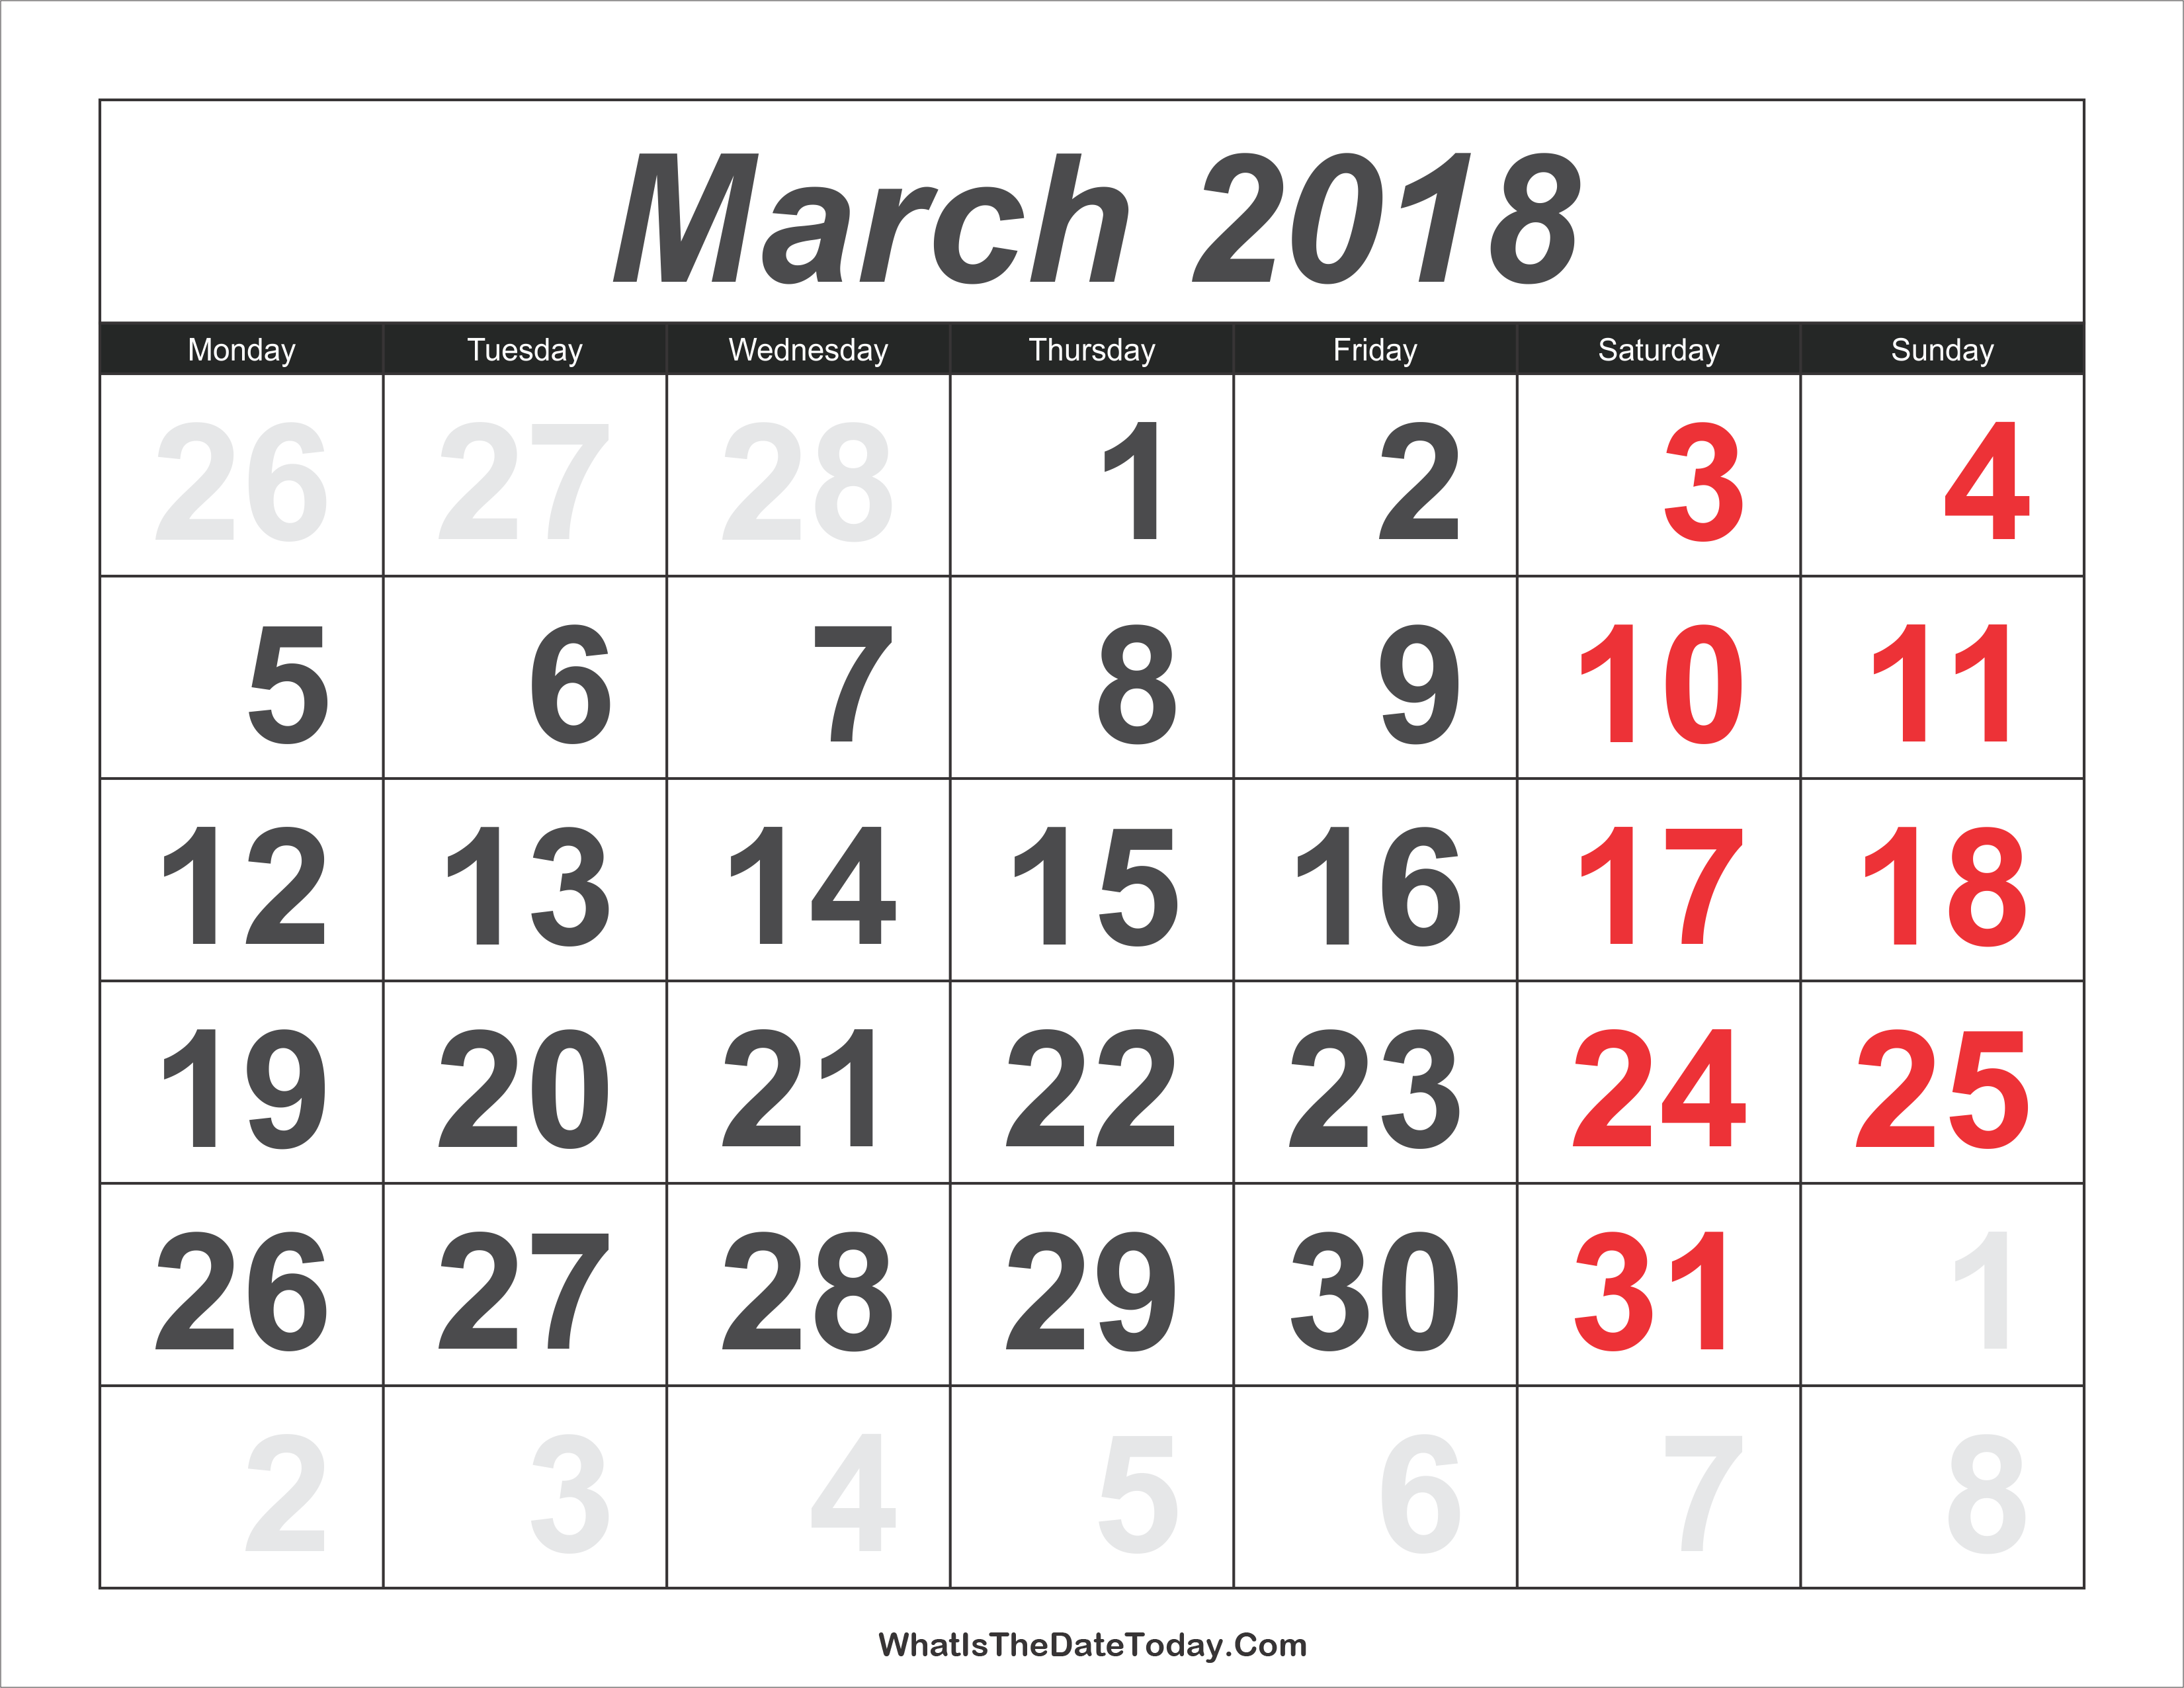 March 2018 Calendar Templates Whatisthedatetoday